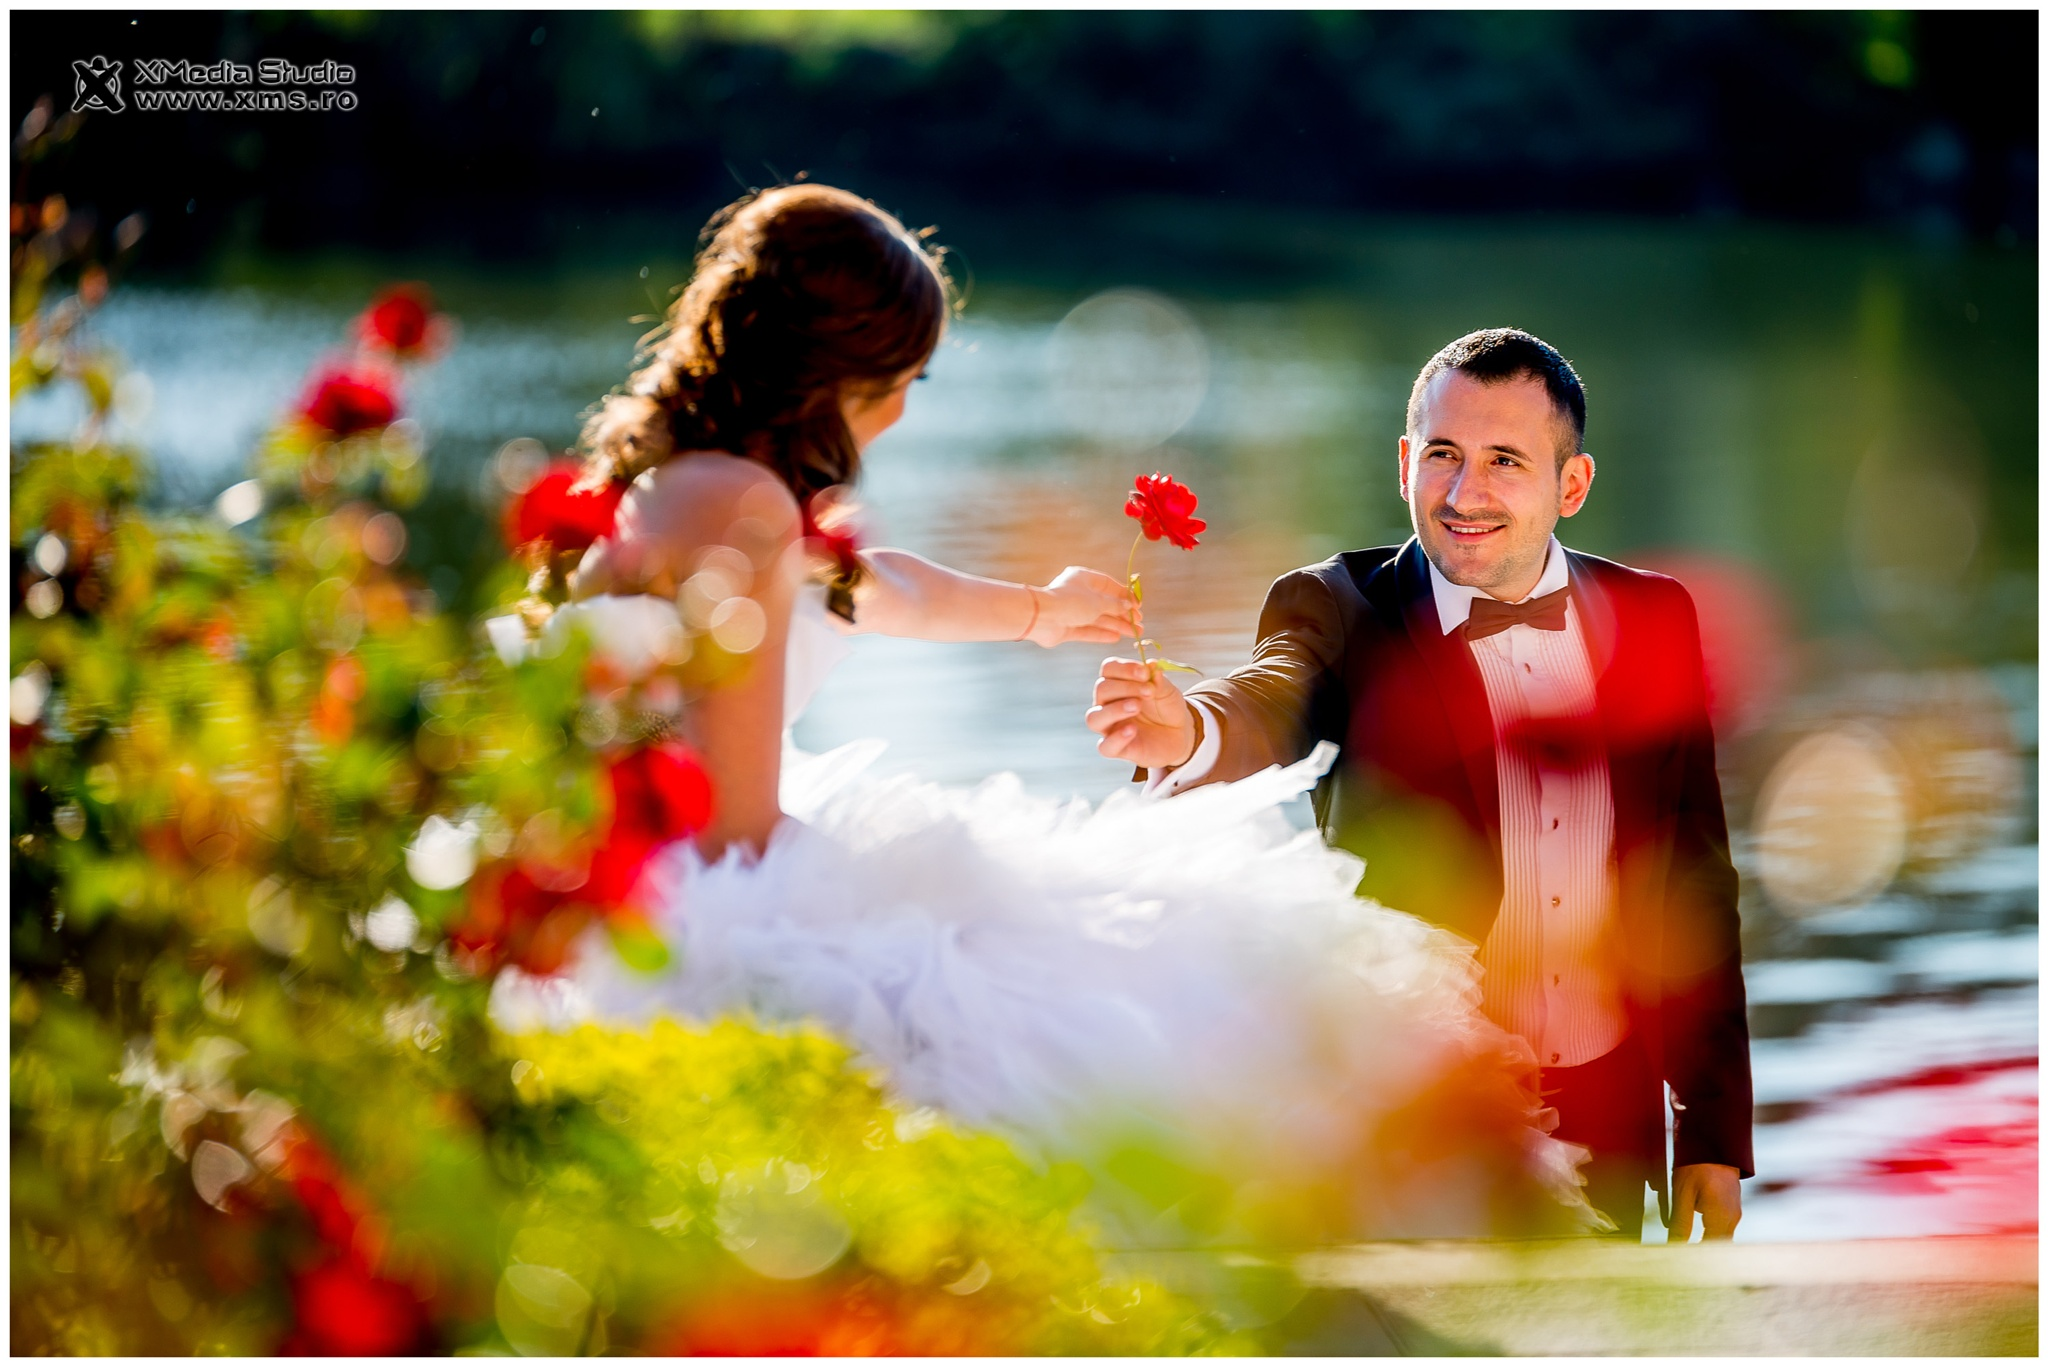 Wedding photography by Xmediastudio valentin